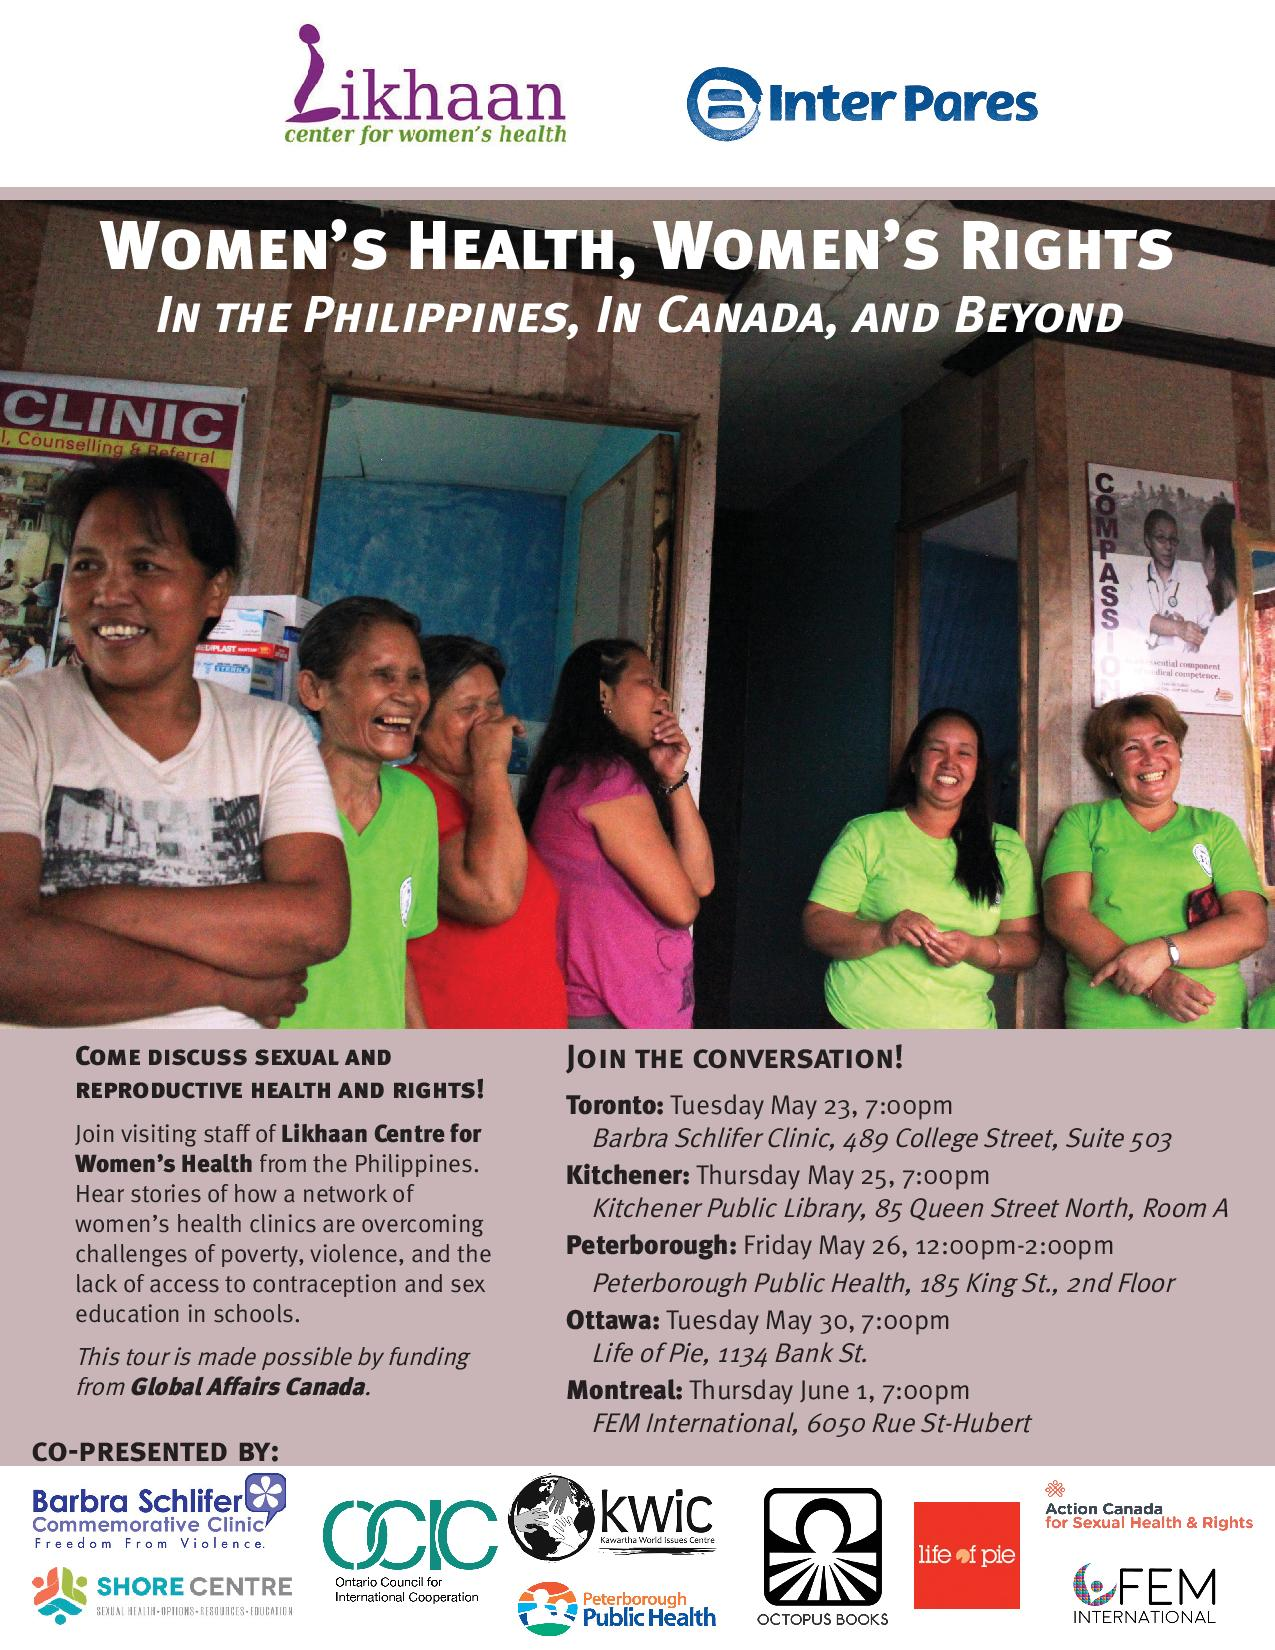 Women's Health, Women's Rights May 26